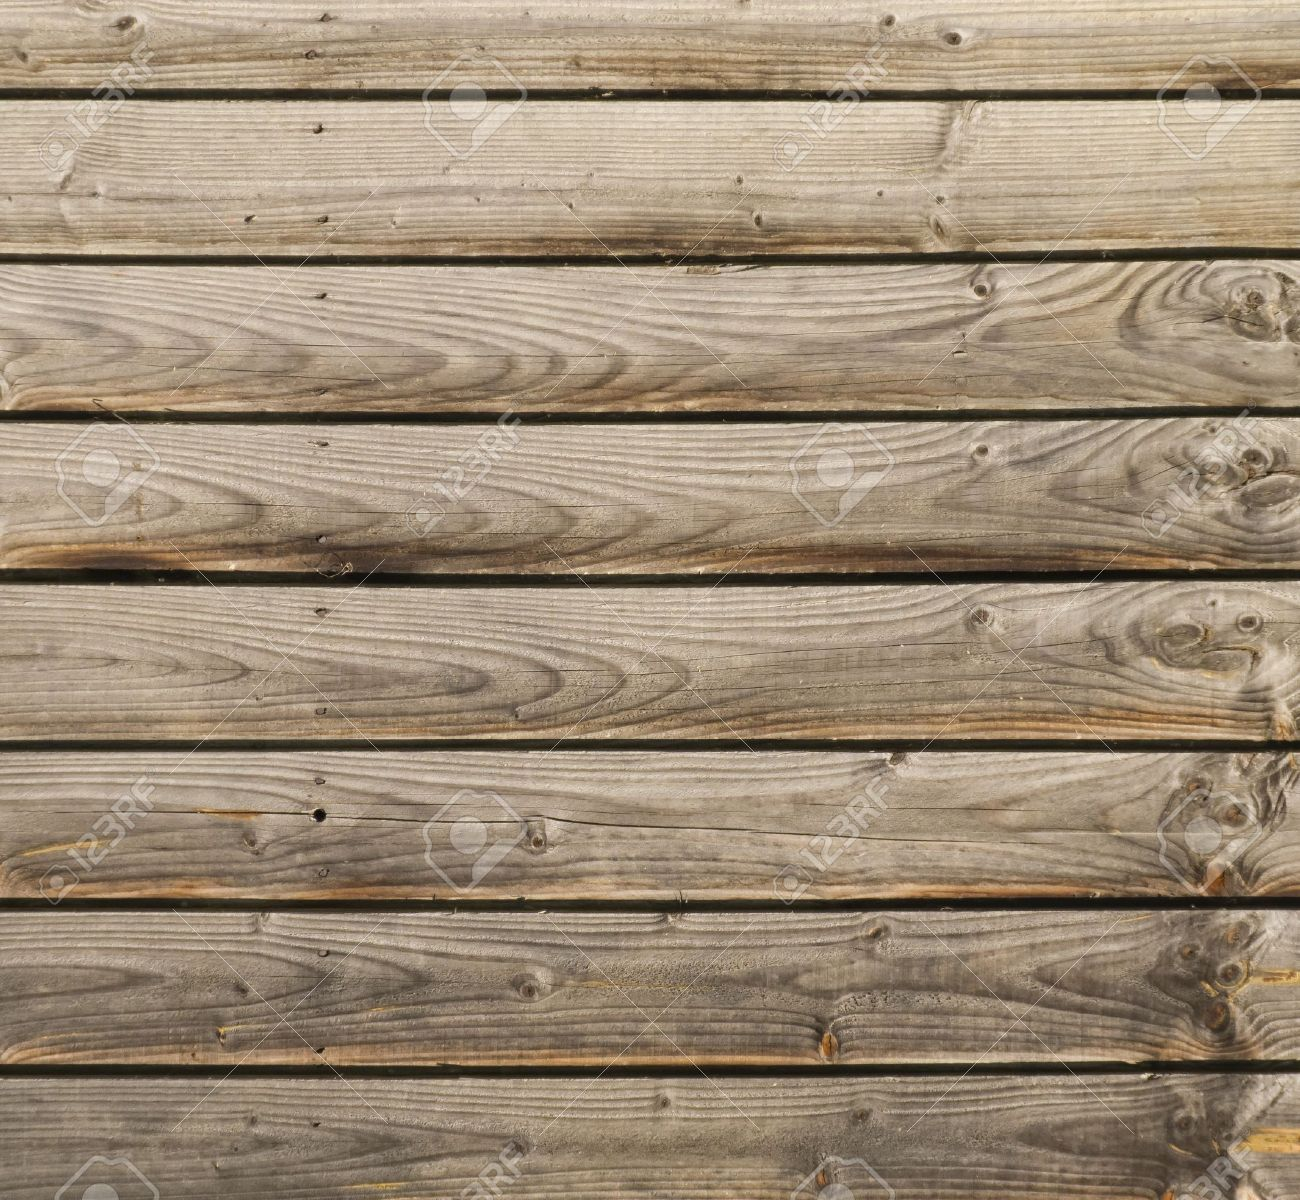 Barn Wood Texture brown wood texture from barn stock photo, picture and royalty free